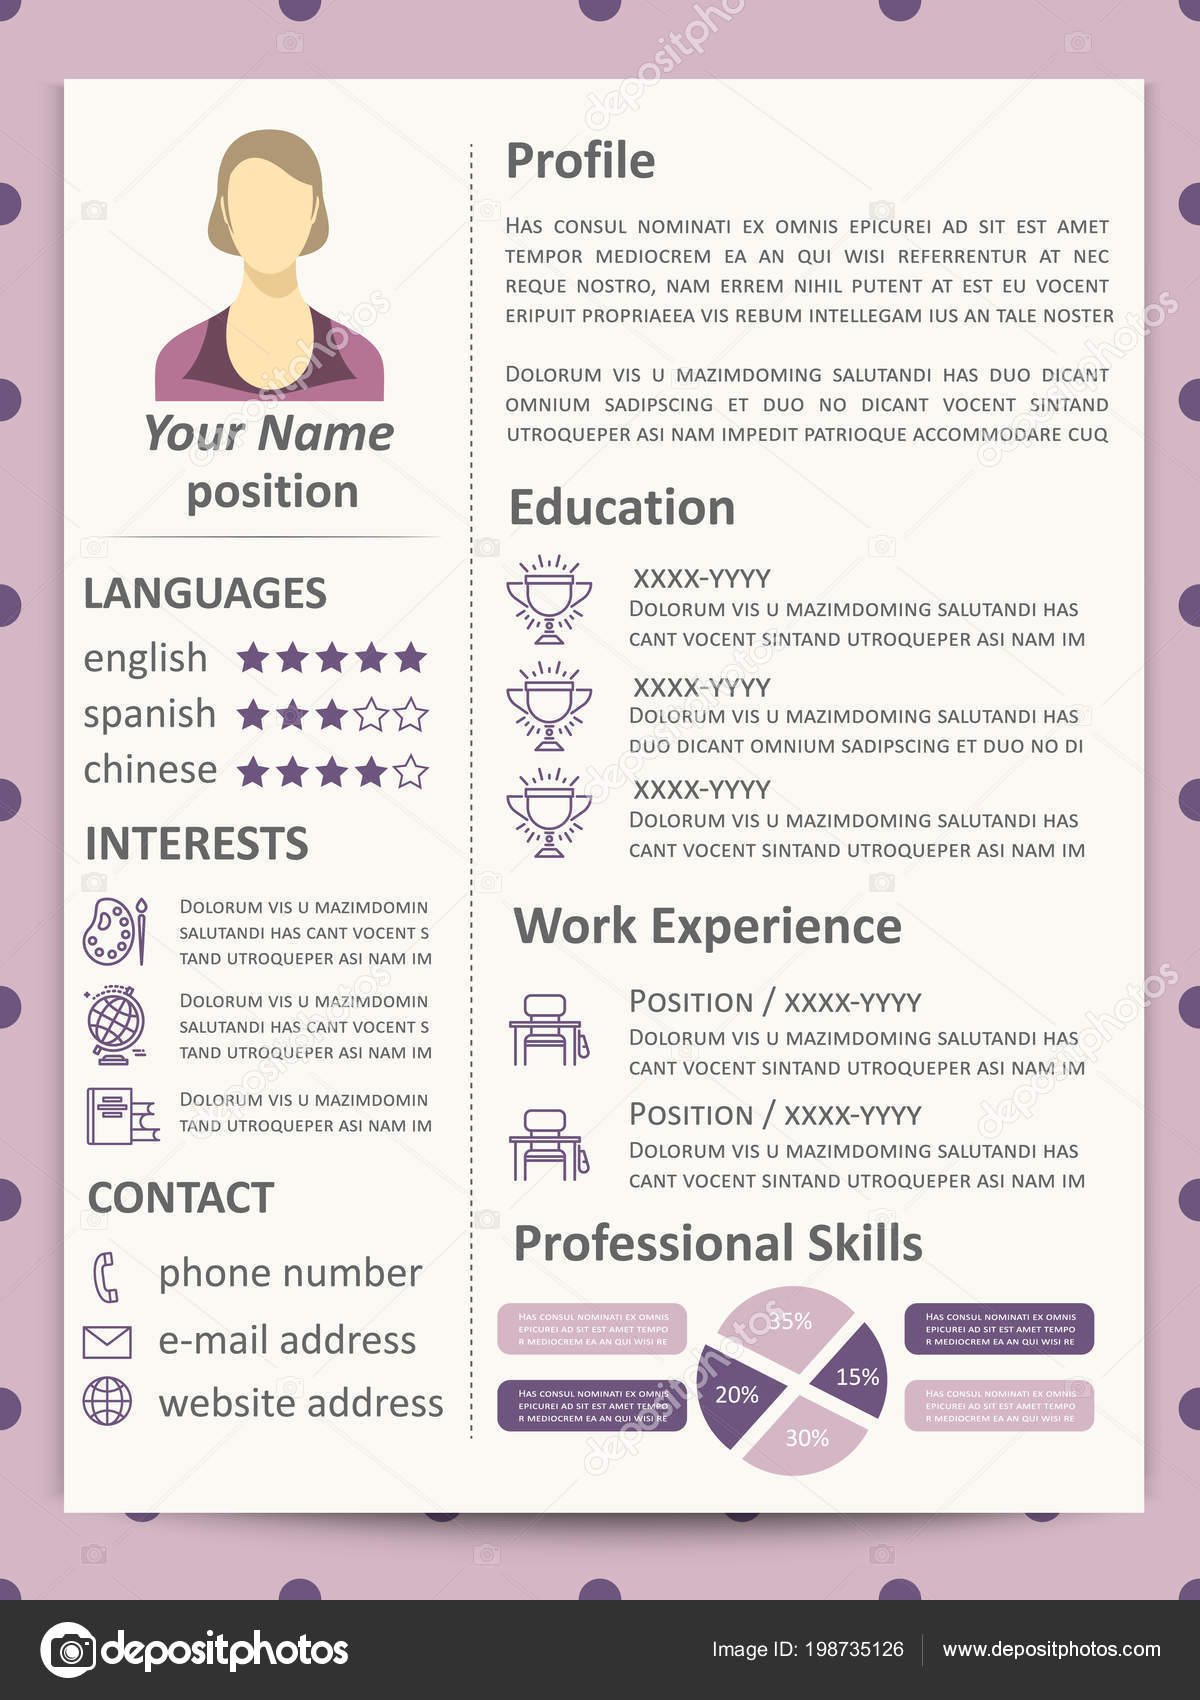 Cute resume templates | Female resume template with ...